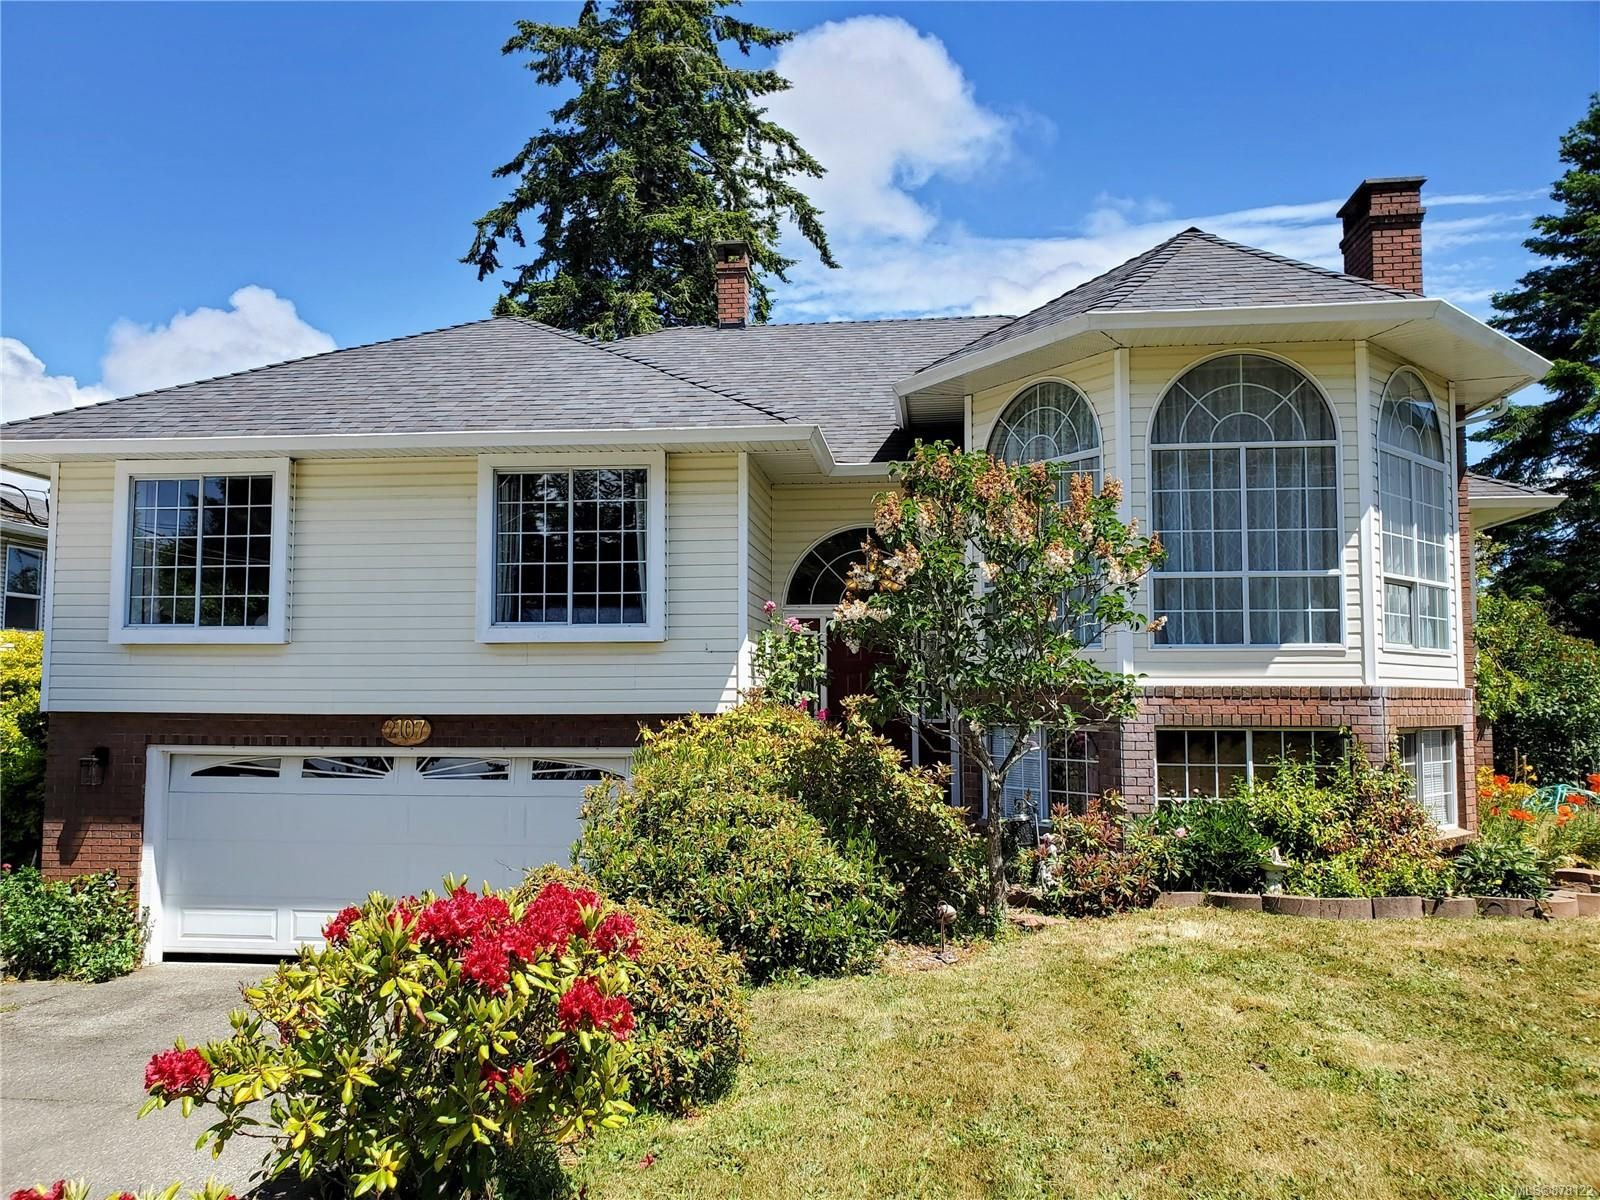 Main Photo: 2107 Amethyst Way in : Sk Broomhill House for sale (Sooke)  : MLS®# 878122